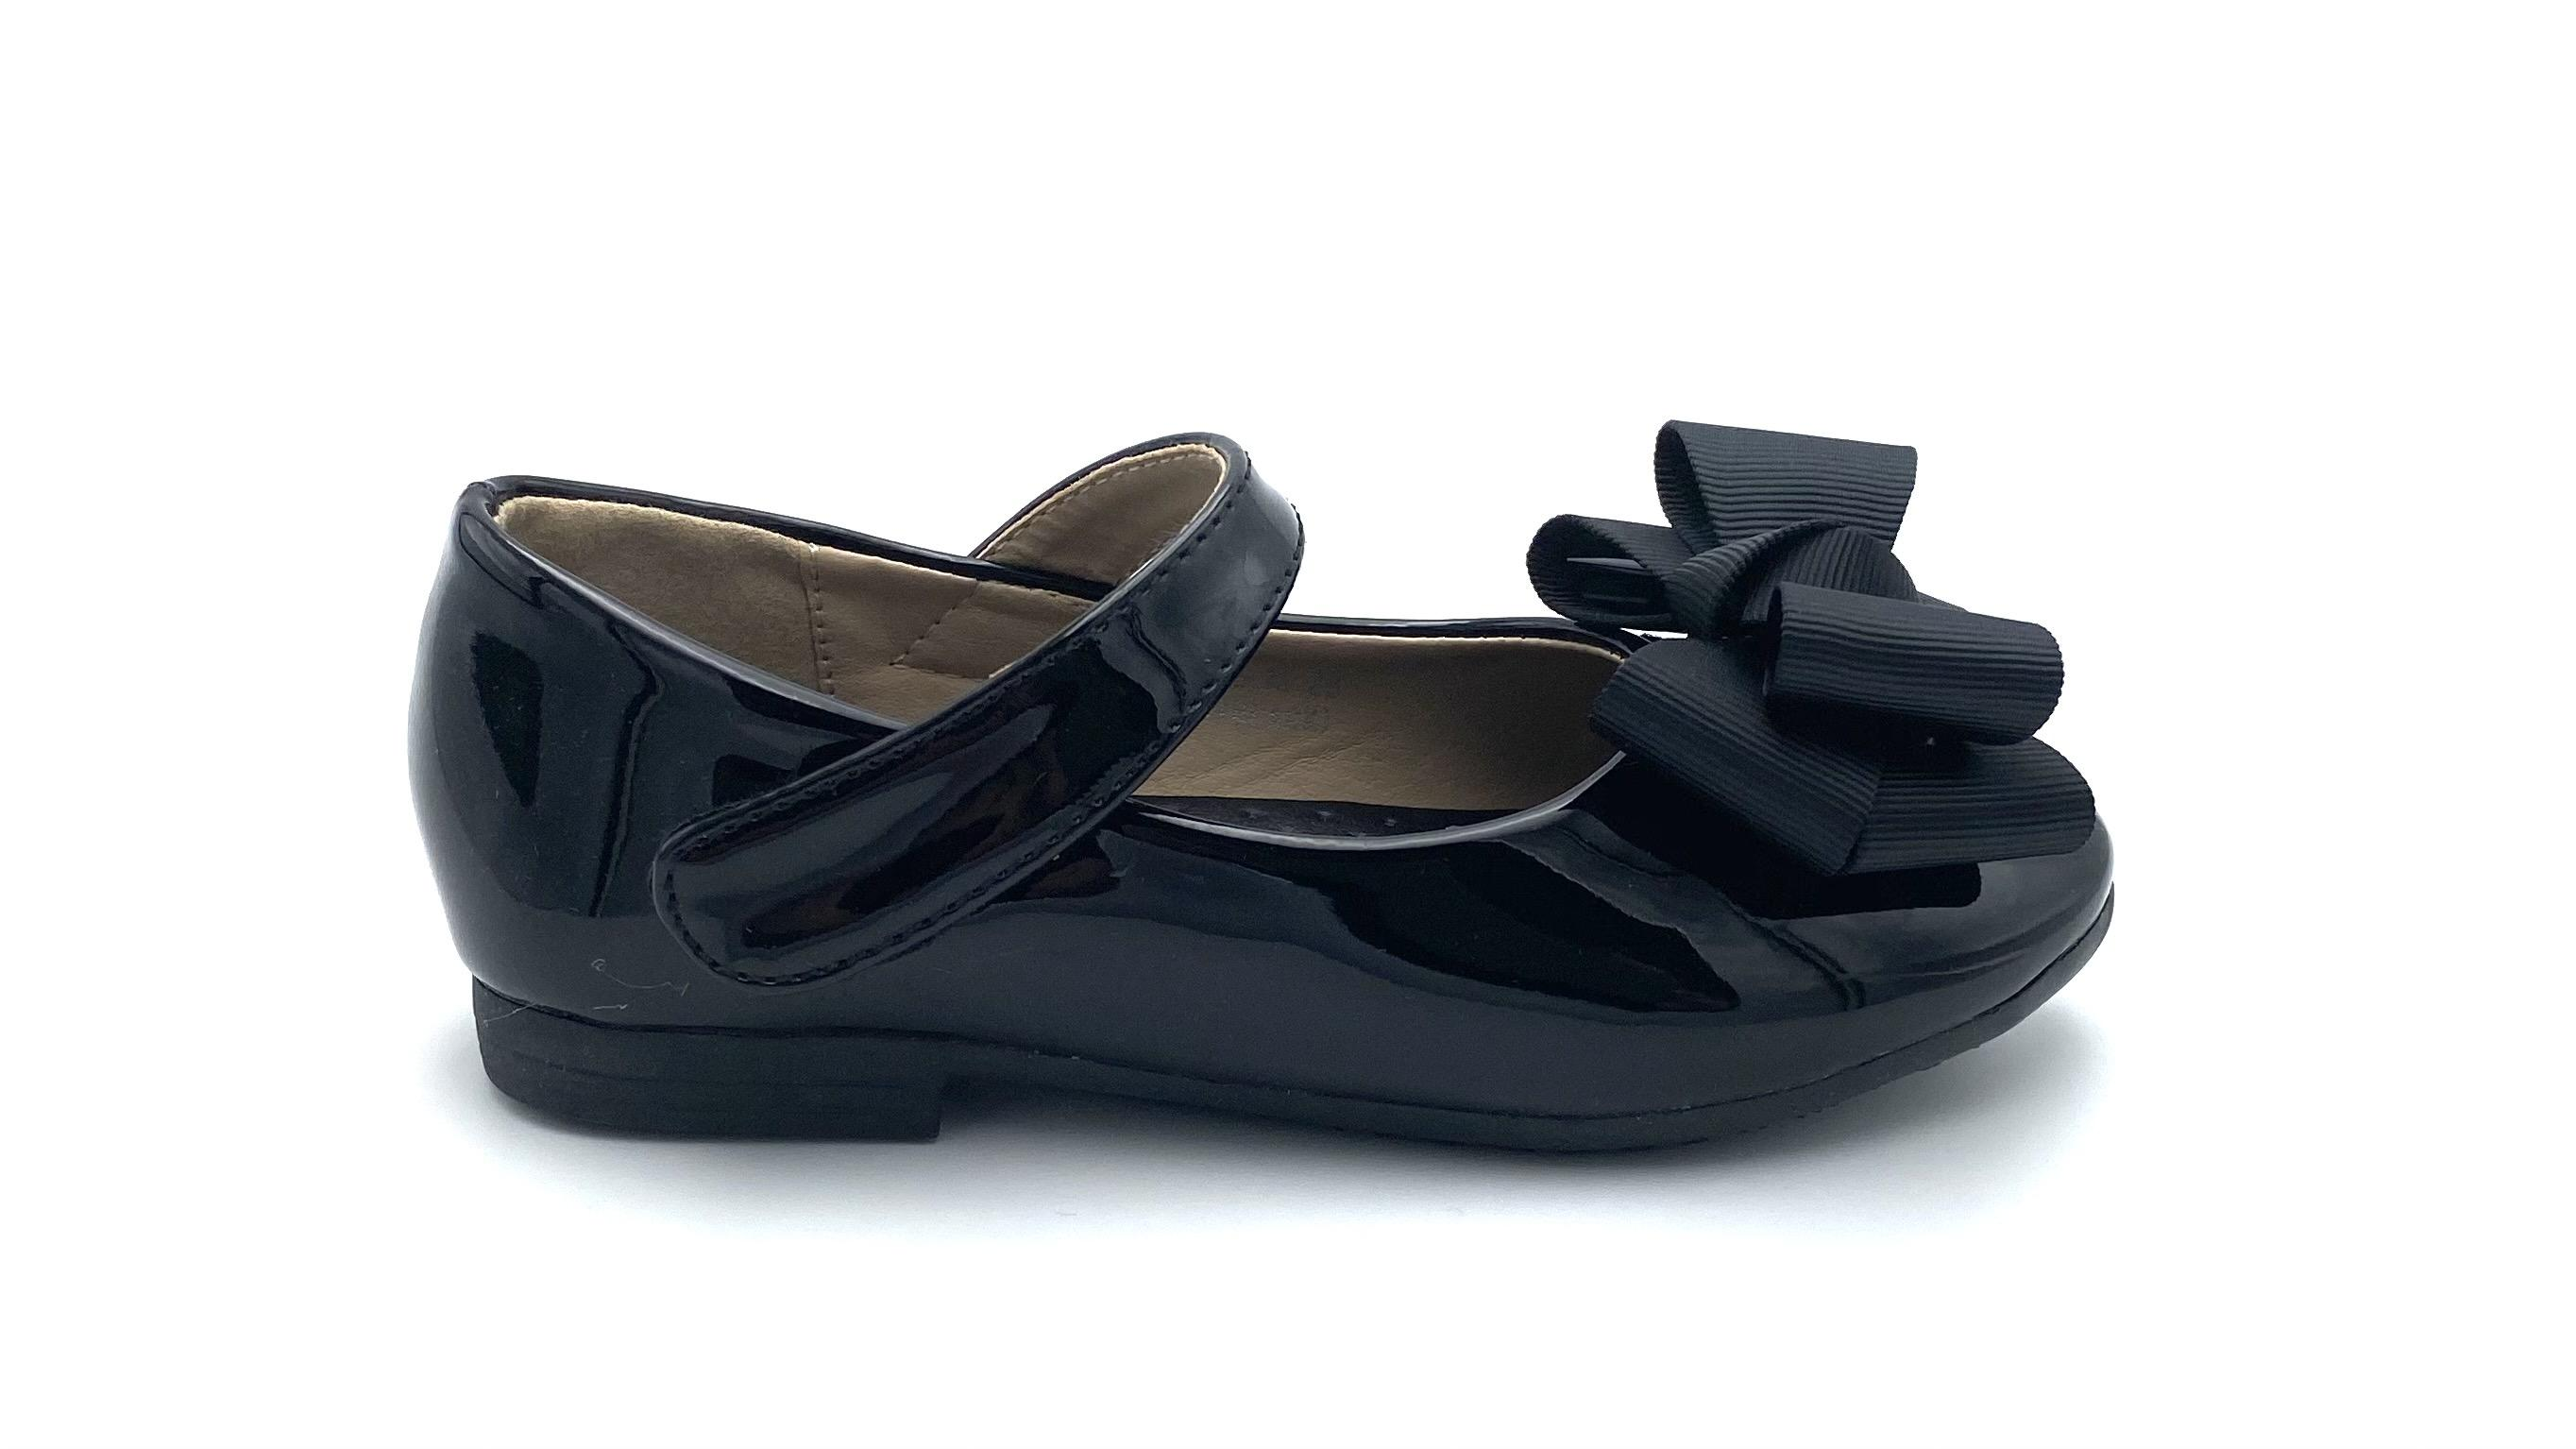 KID085M BALLERINA FLATS BLACK